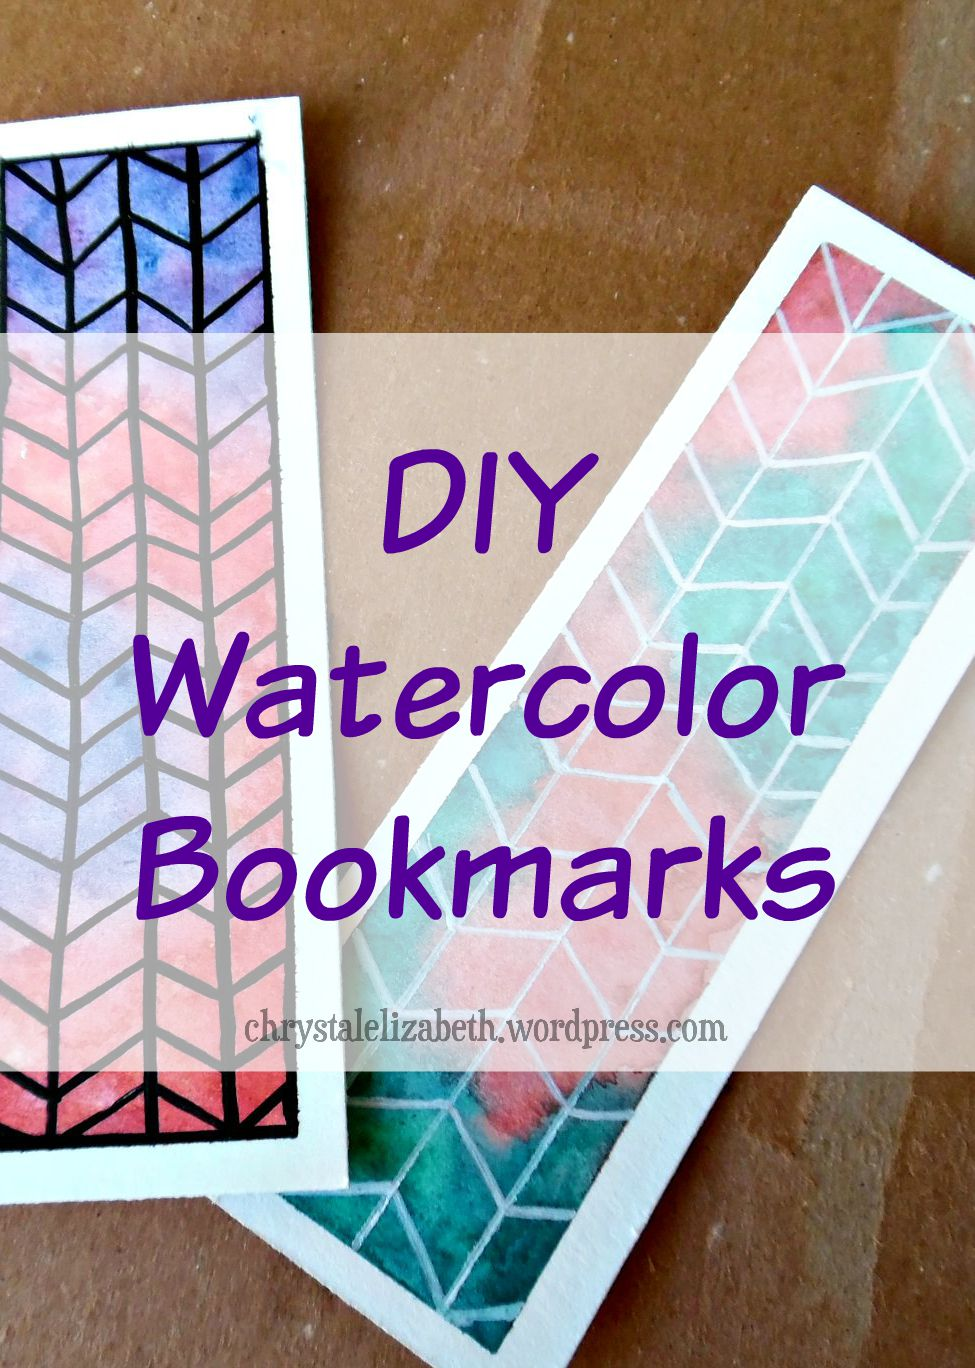 975x1368 Diy Watercolor Bookmarks {How I Made It Step By Step